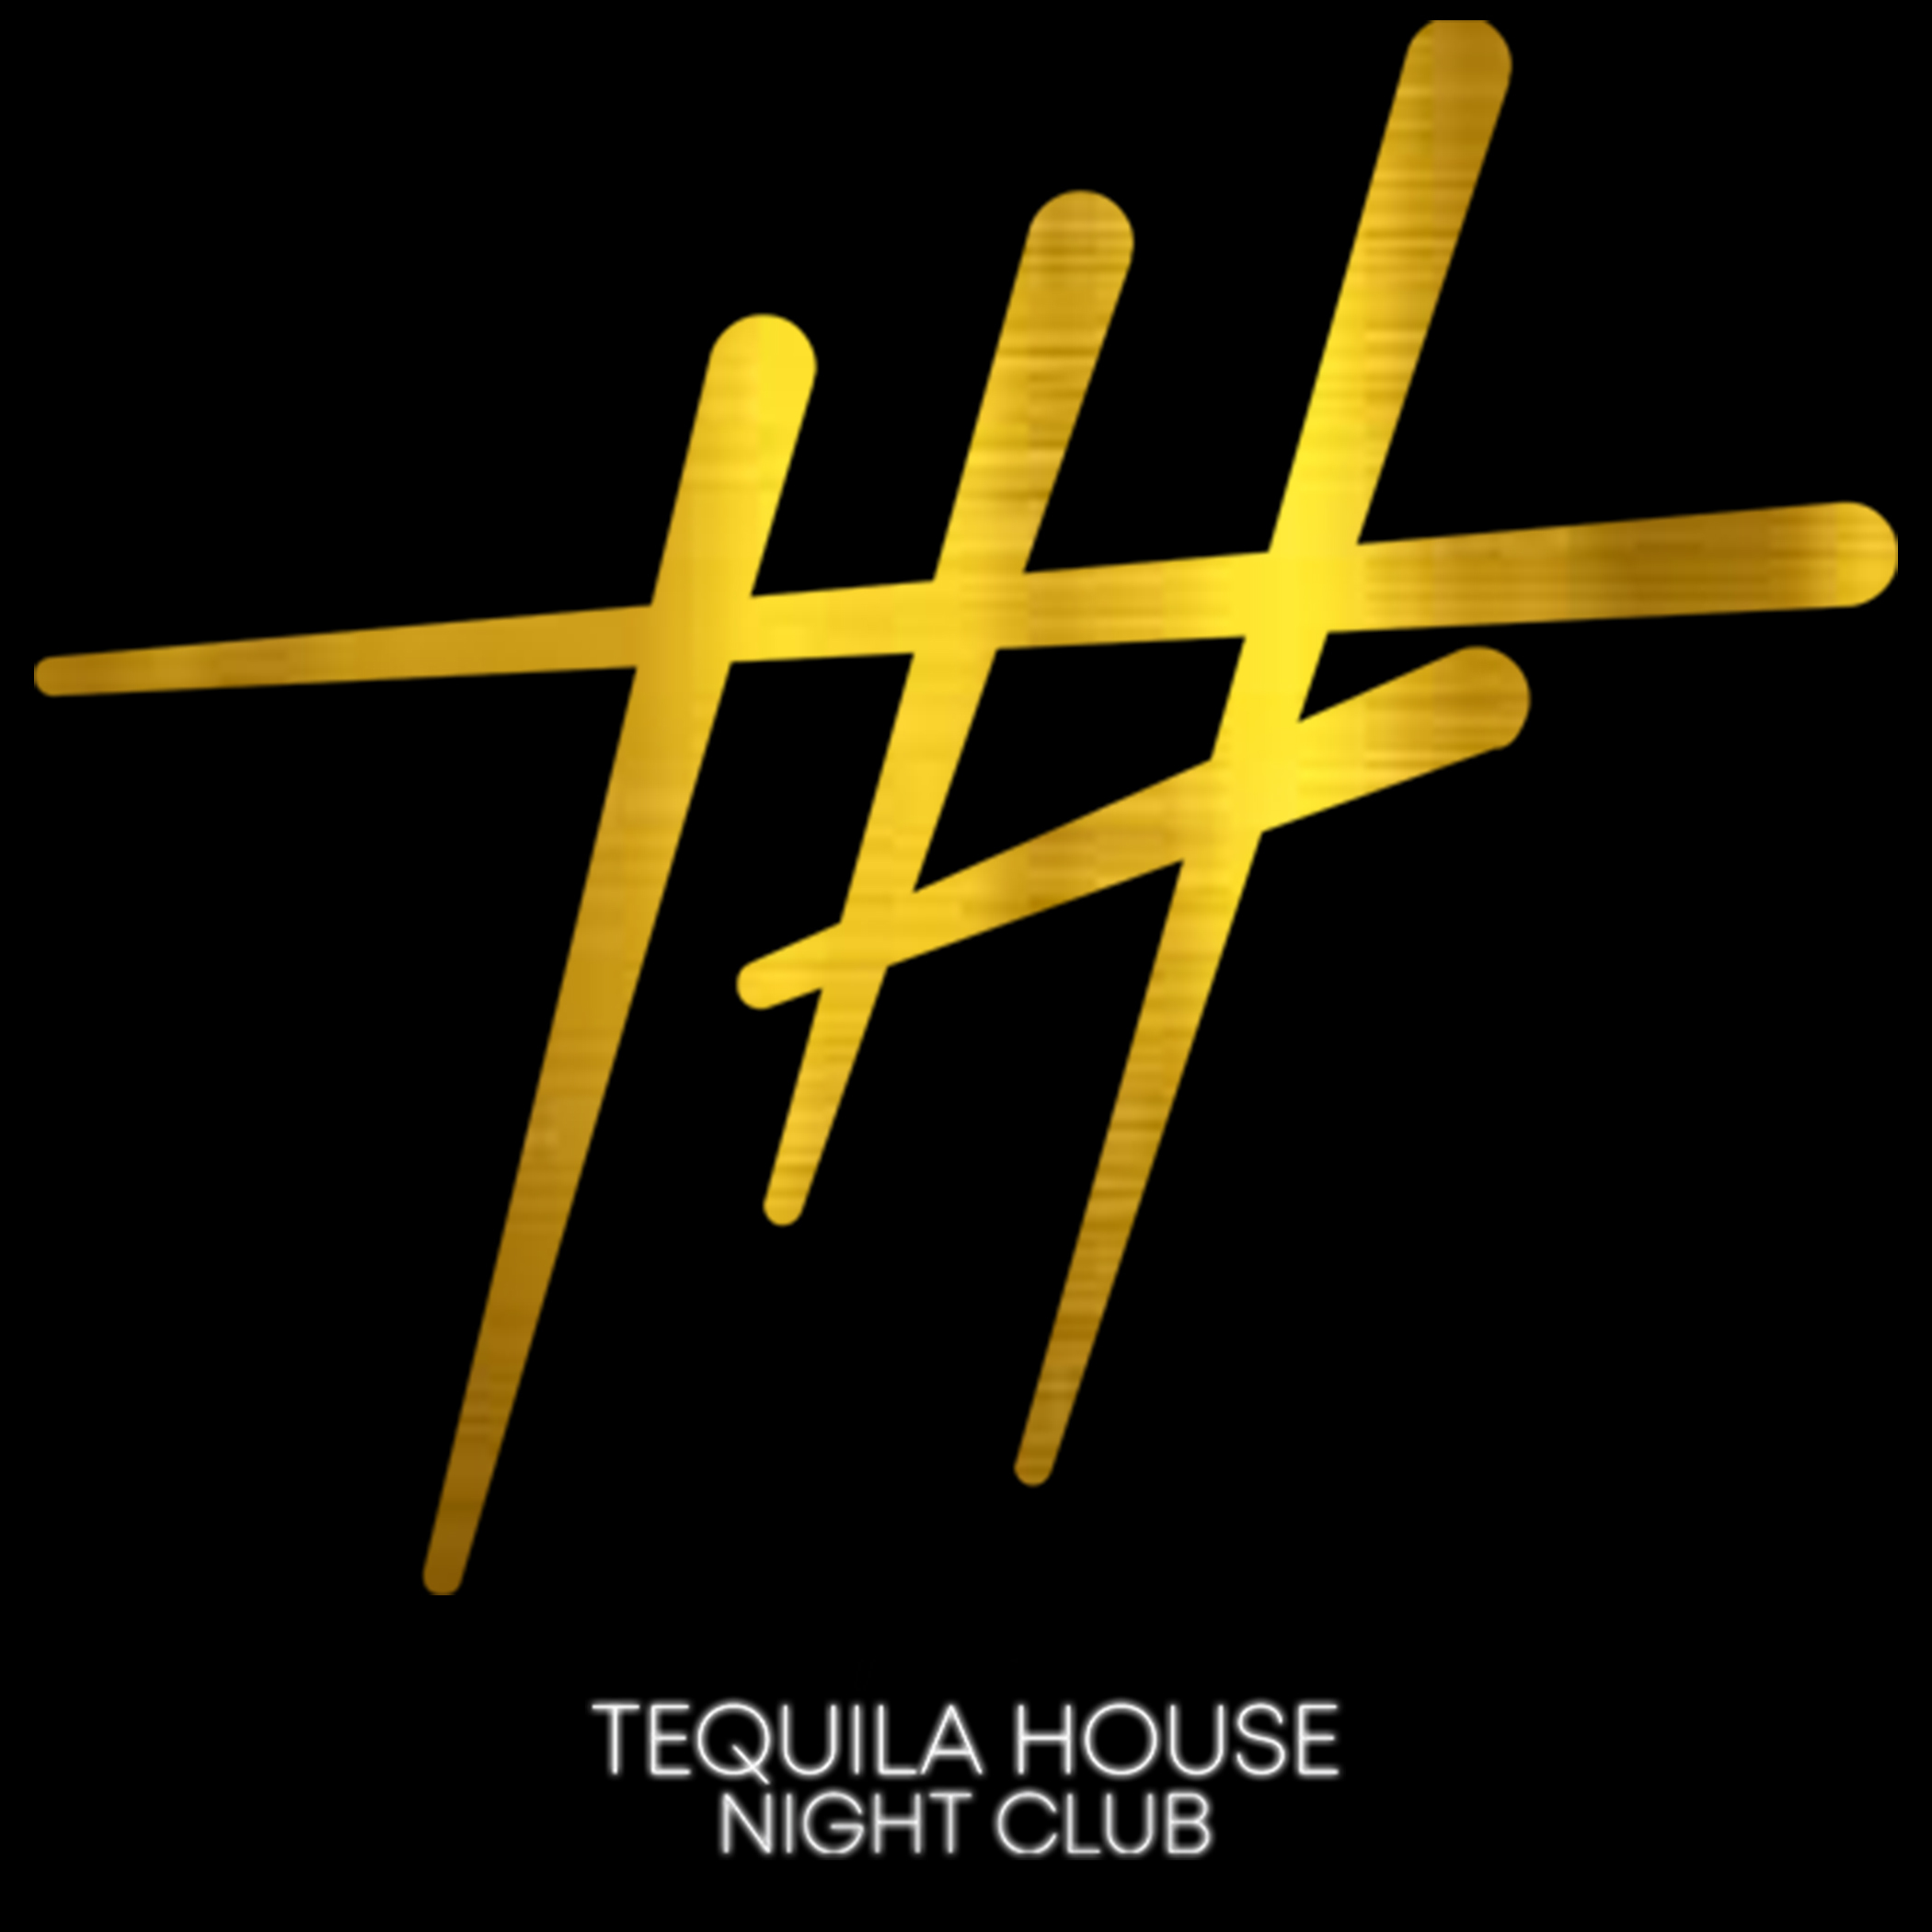 Tequila House Charlotte